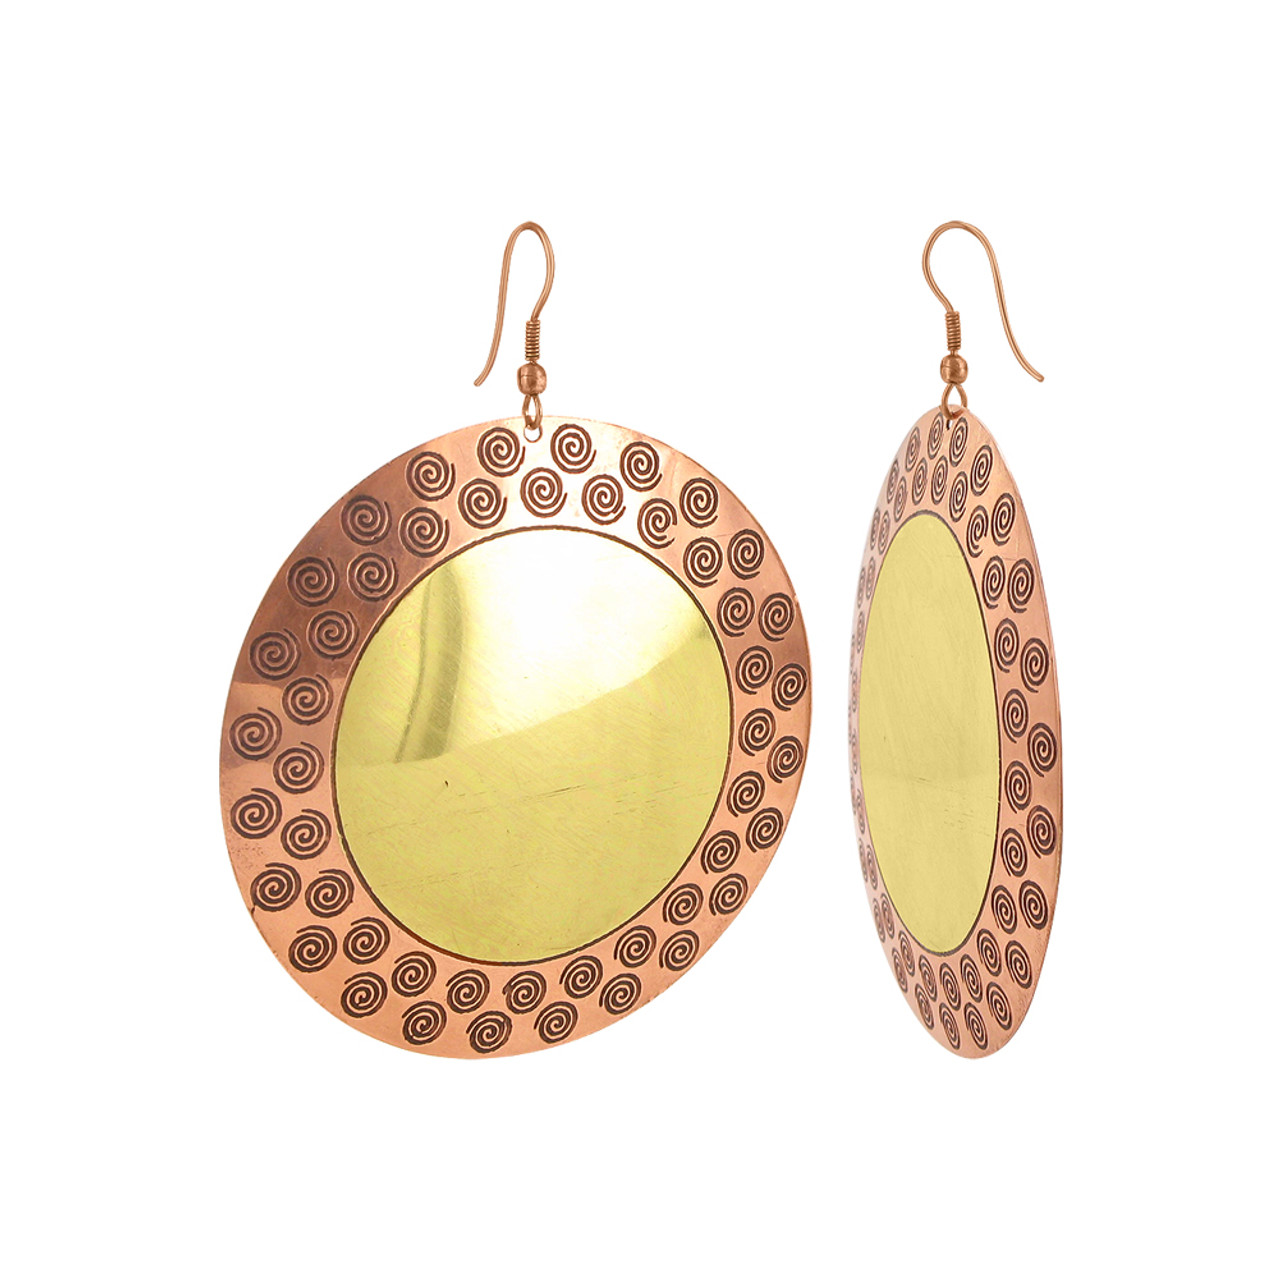 2.4 inch Round Swirl Designer Fashion Drop Earrings with French Wire Findings